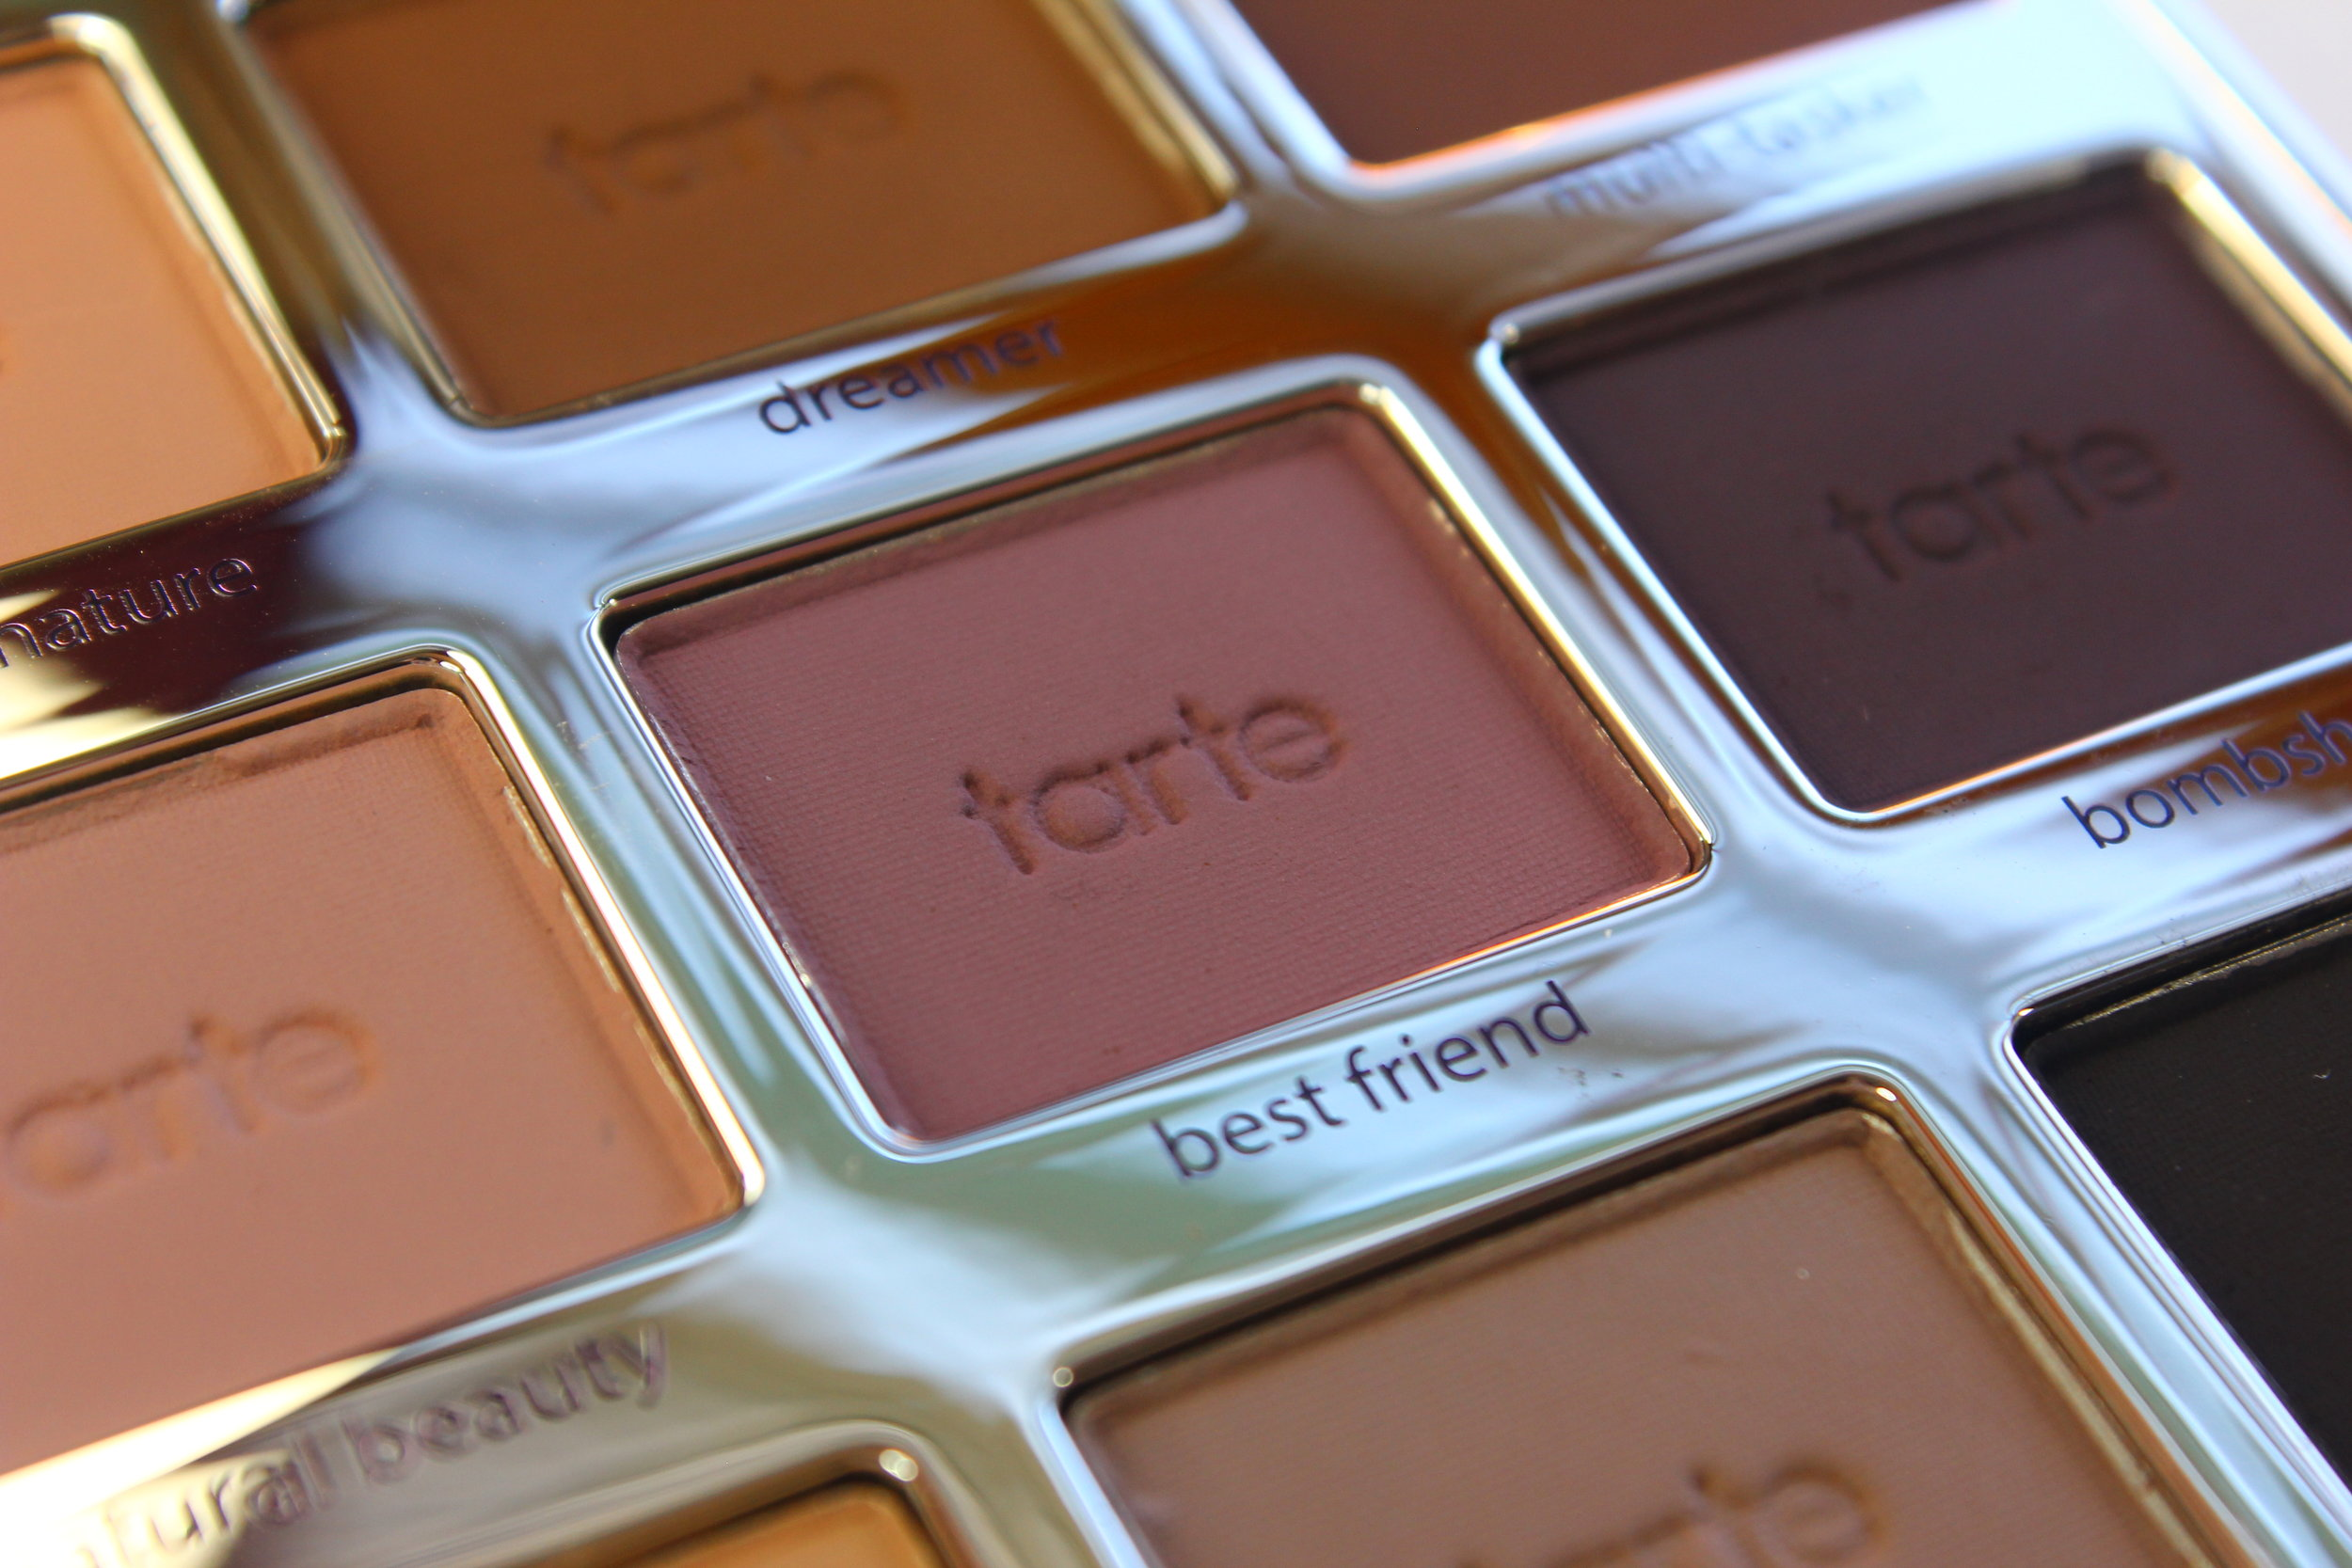 Best Friend - Tartelette Palette